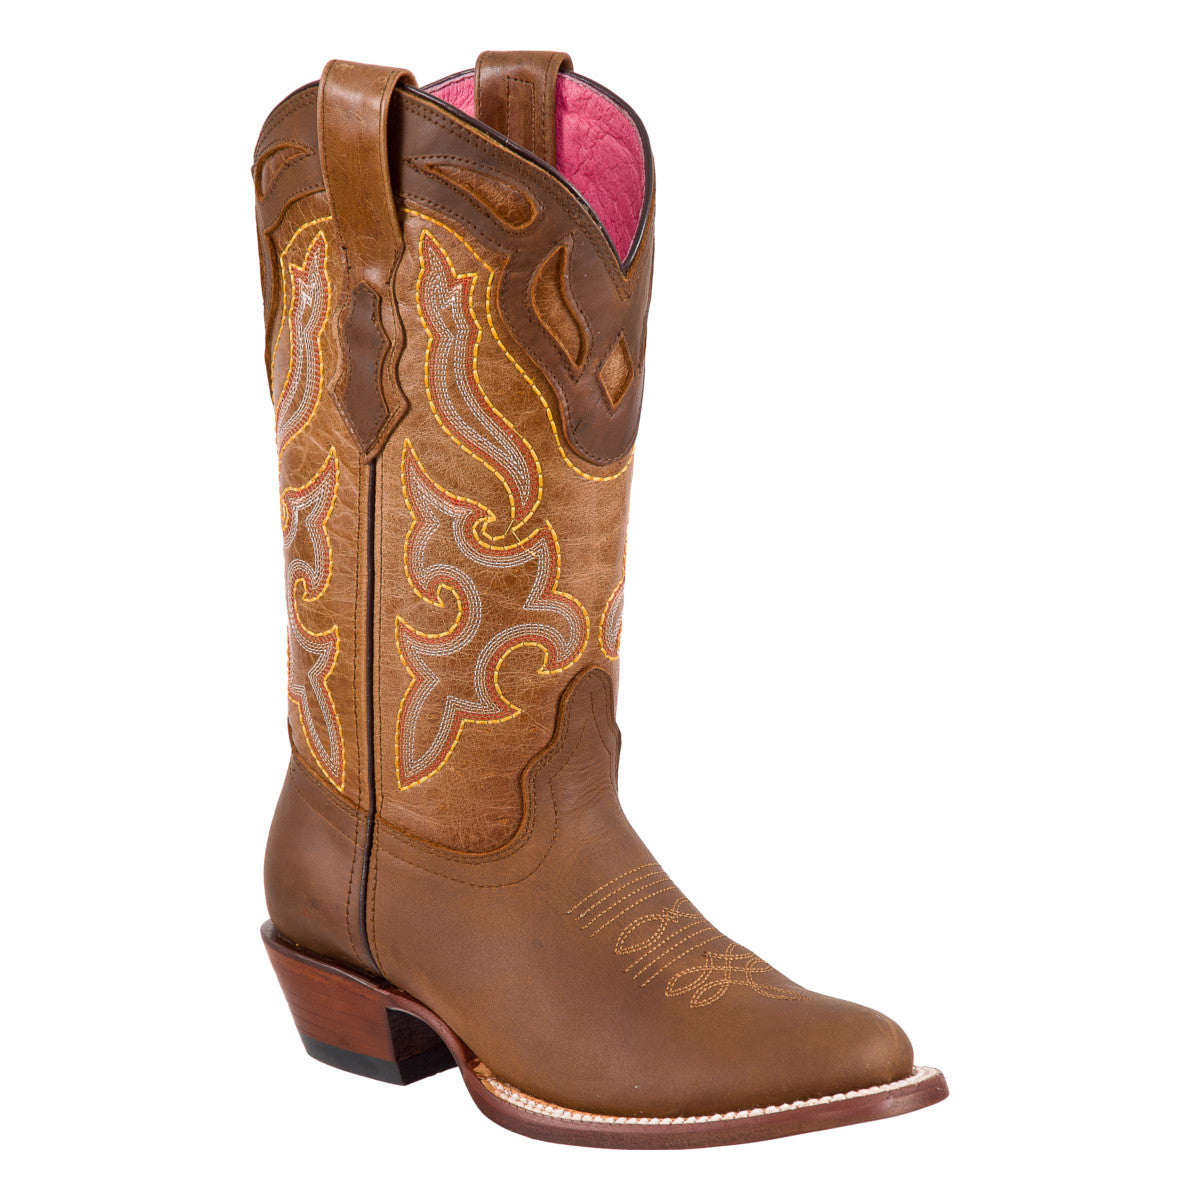 Potro Rebelde Women's Oval Toe Boots